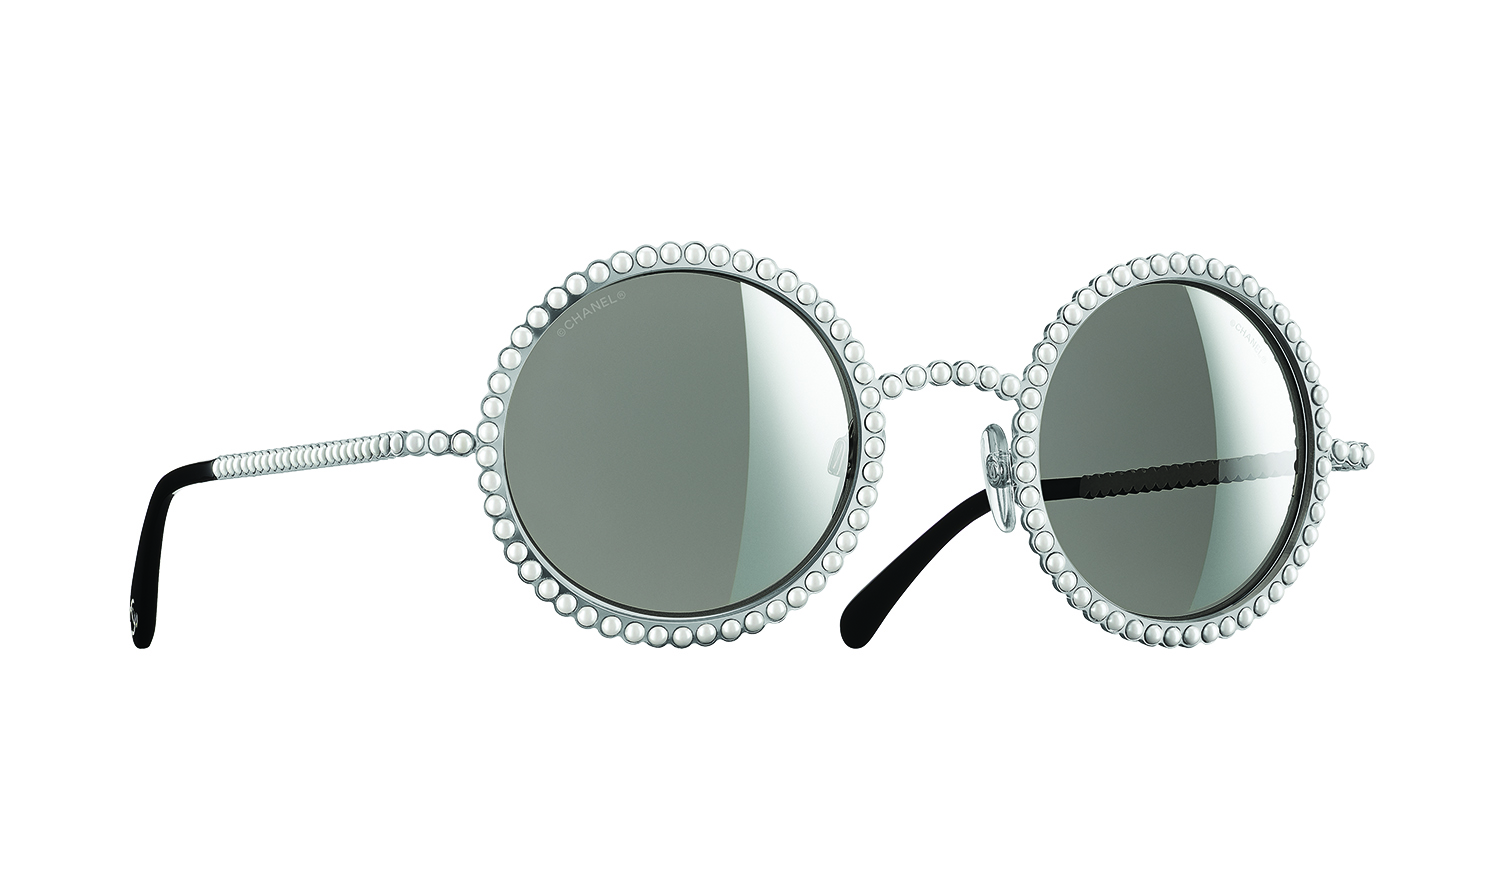 Precious pearls: Chanel\'s new eyewear collection makes a statement ...